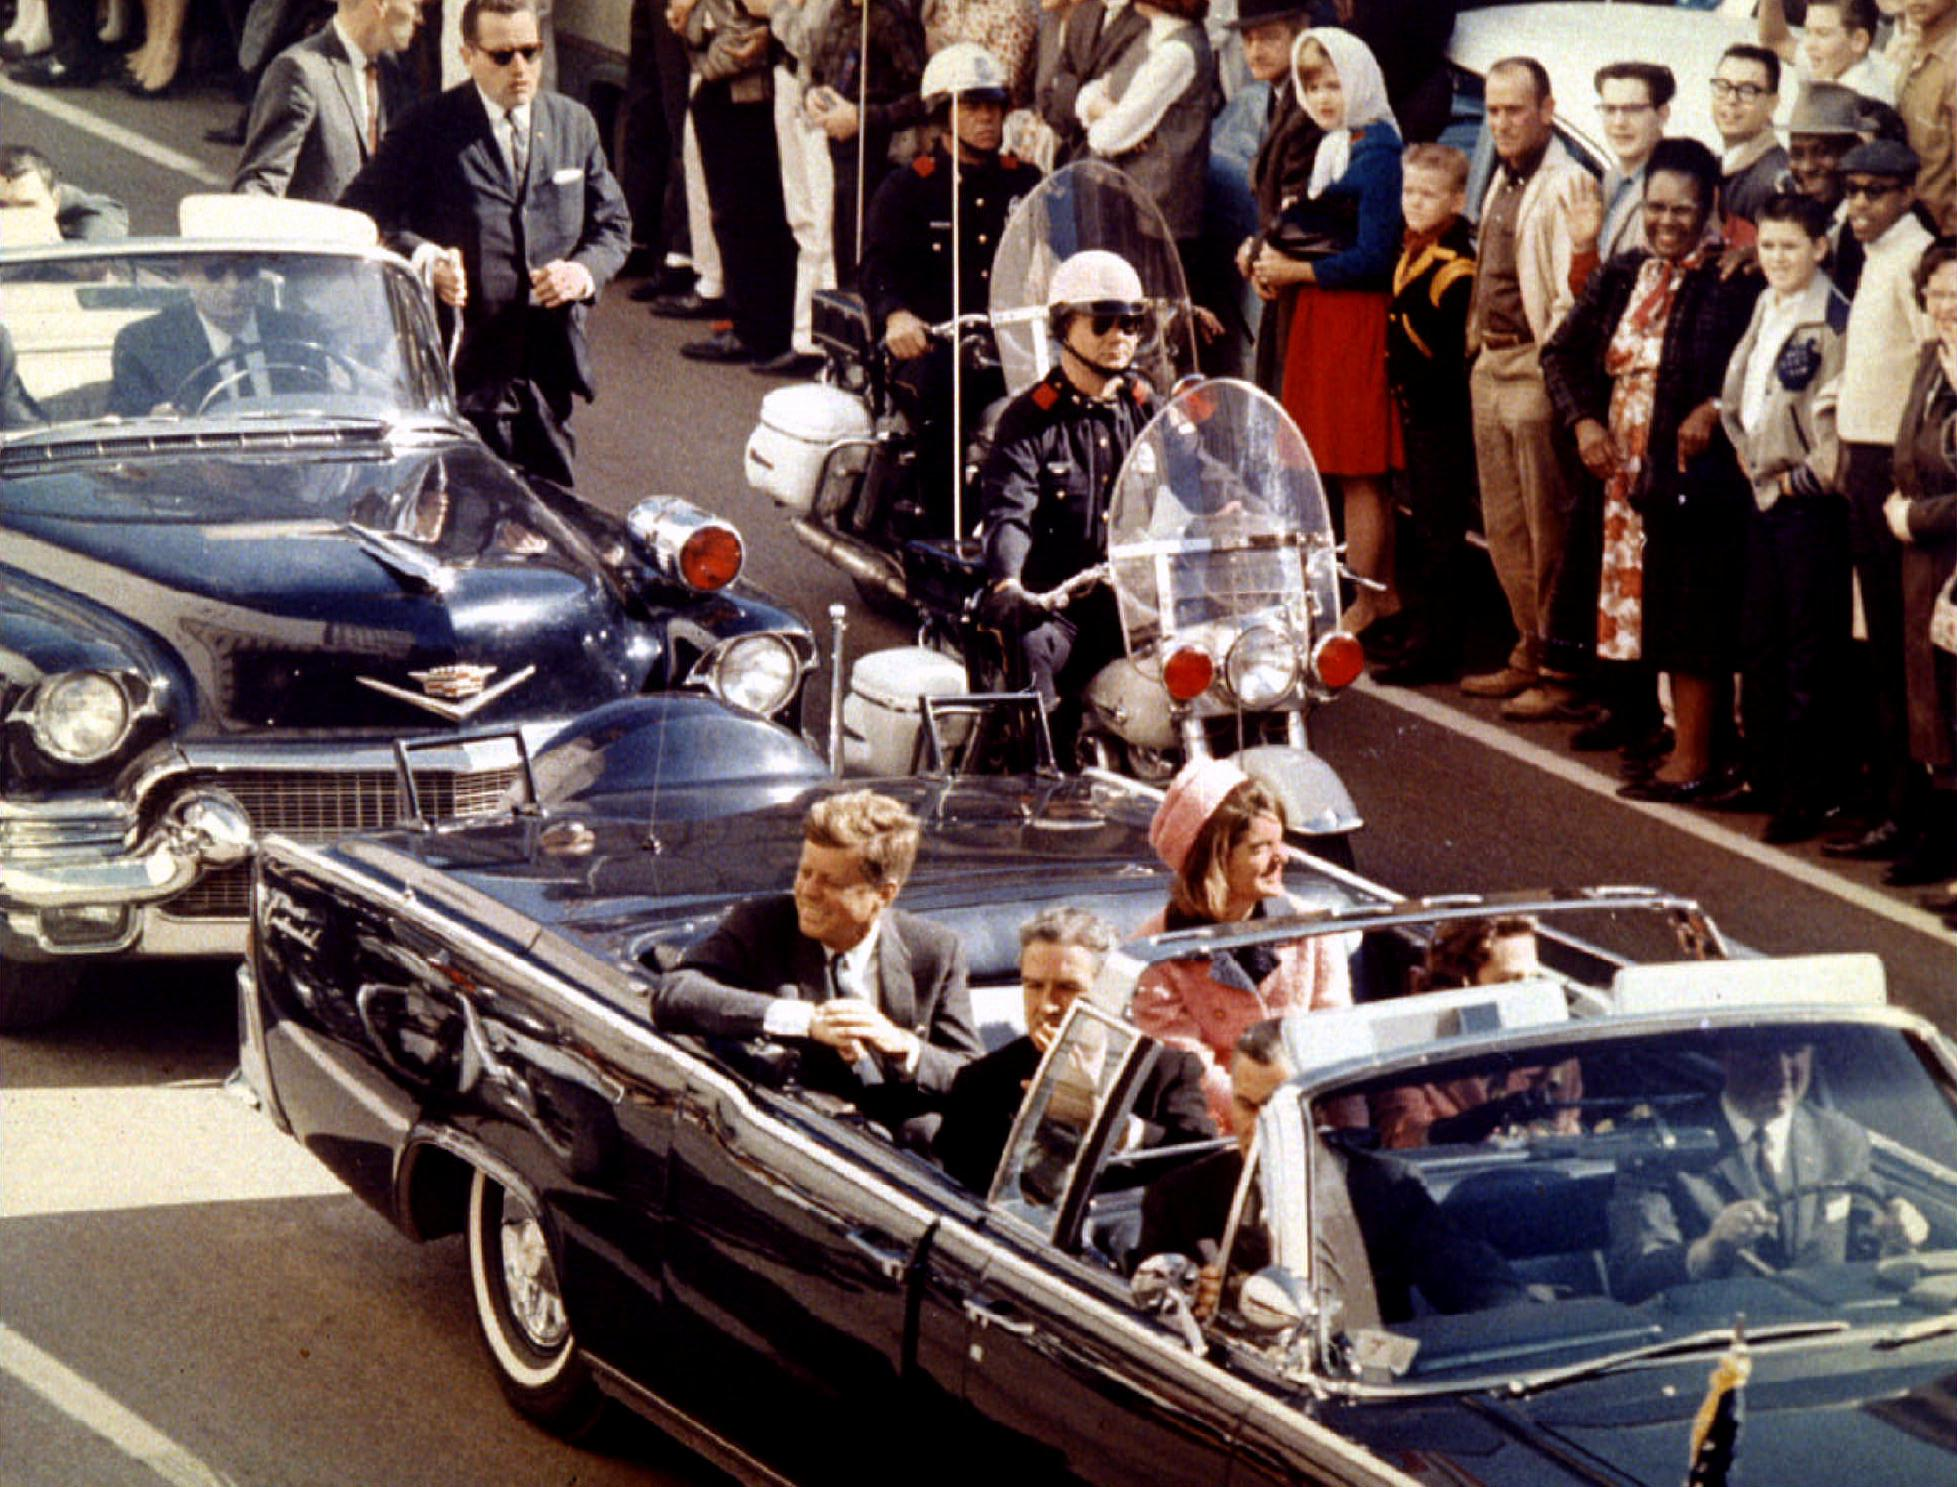 President John F. Kennedy, First Lady Jacqueline Kennedy and Texas Governor John Connally ride through Dallas moments before Kennedy was assassinated on November 22, 1963.